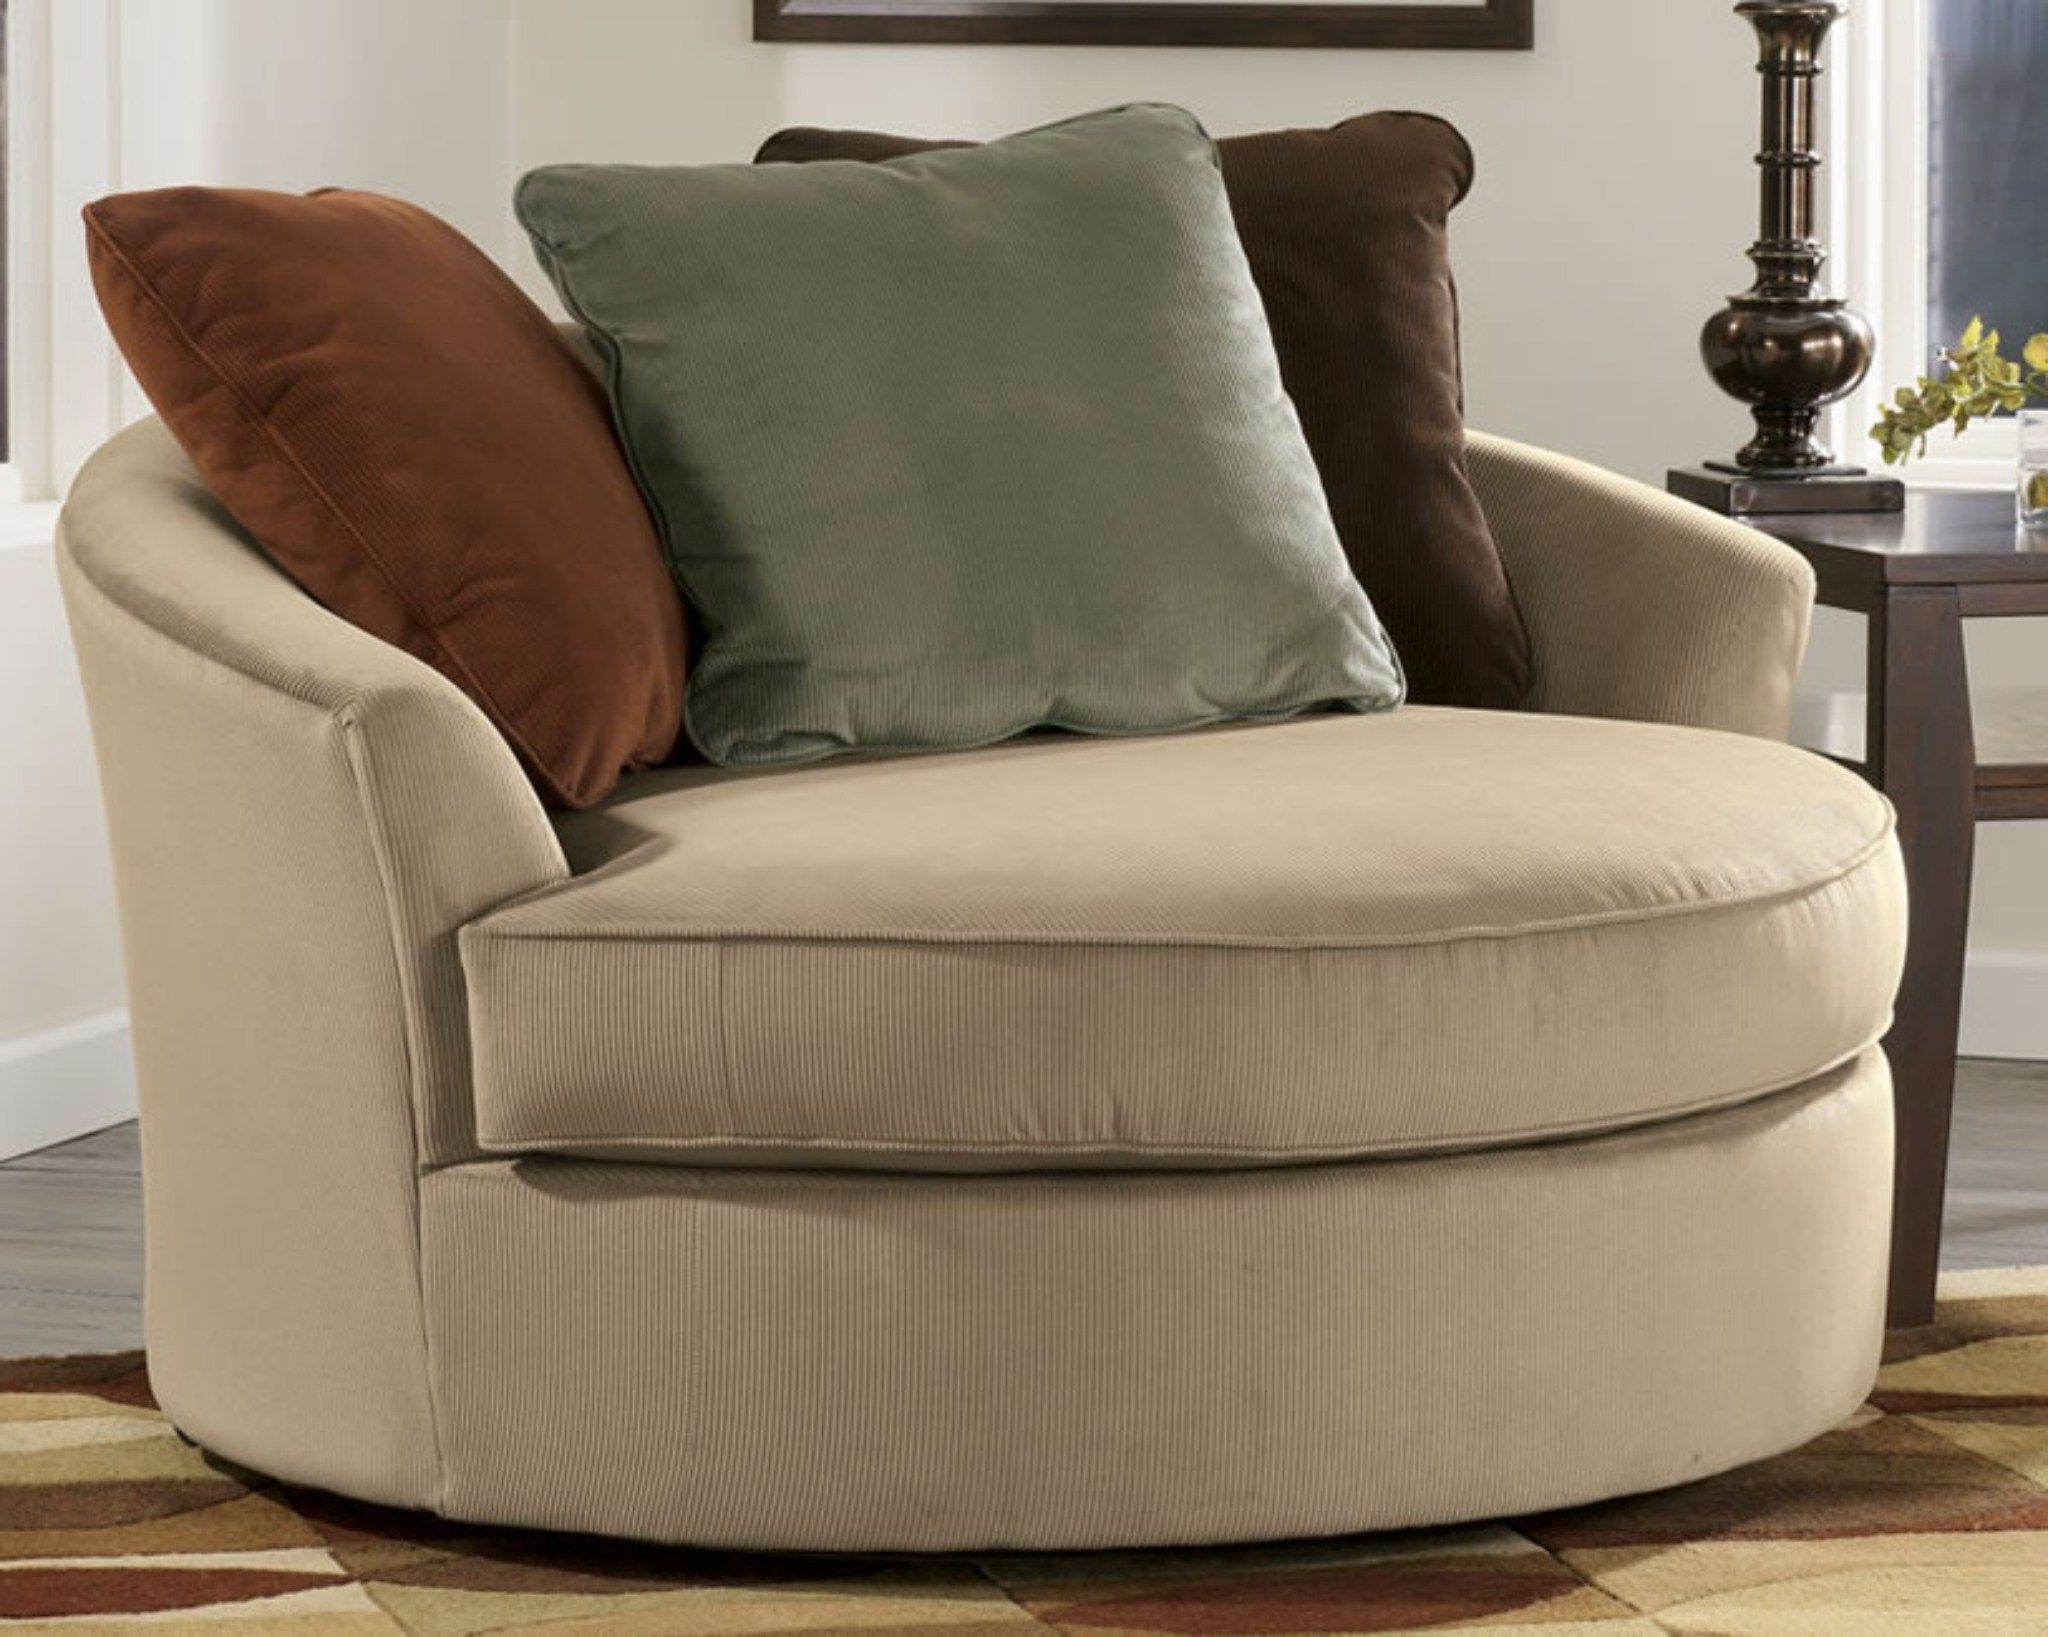 Sofa : Round Sofa Chair Living Room Furniture Round' Furniture Within Famous Sofa Chairs For Living Room (View 10 of 15)